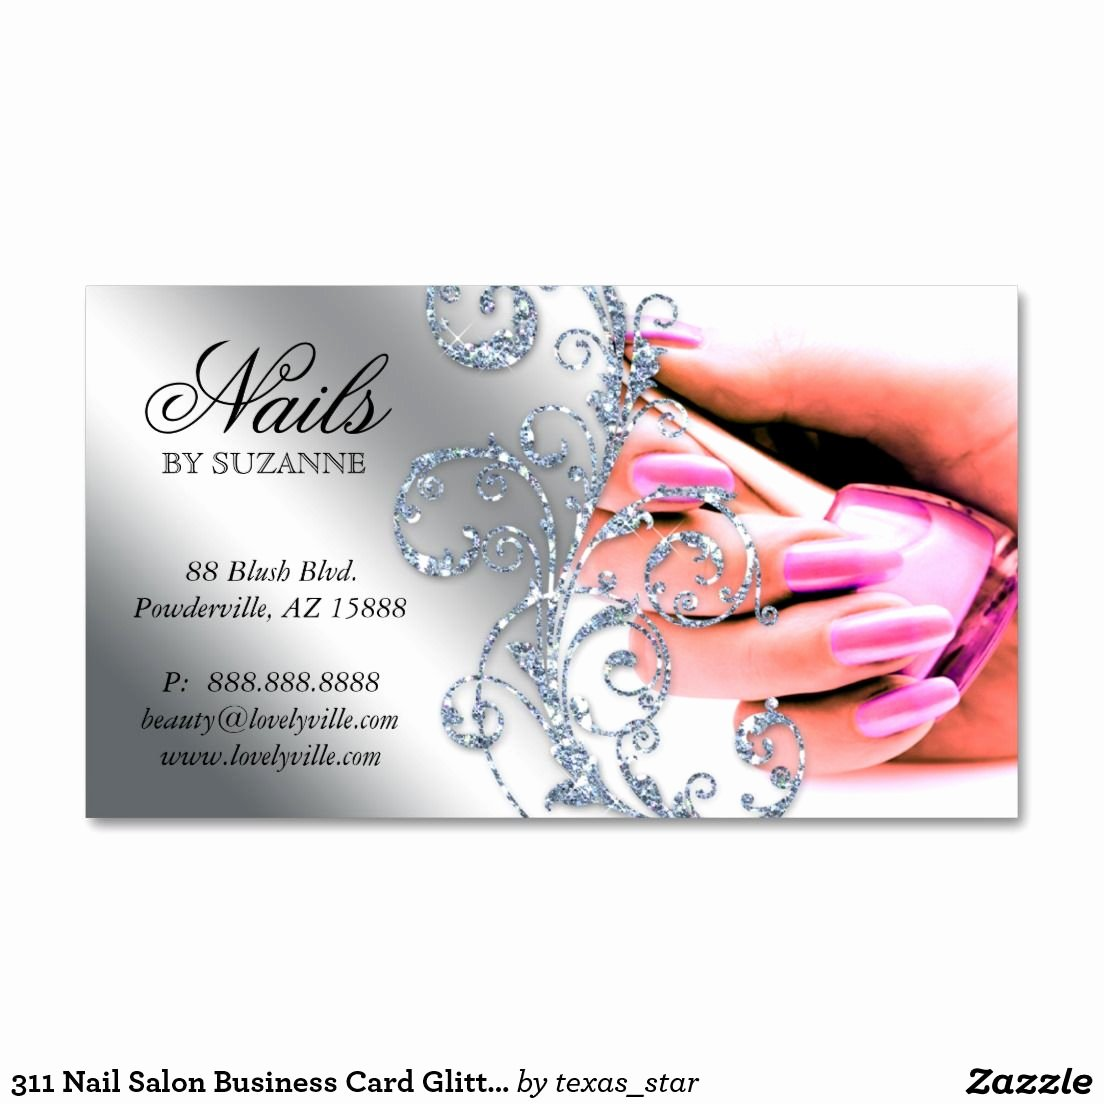 Nail Salon Business Cards Inspirational 311 Nail Salon Business Card Glitter Pink Silver Zazzle In 2019 Business Cards